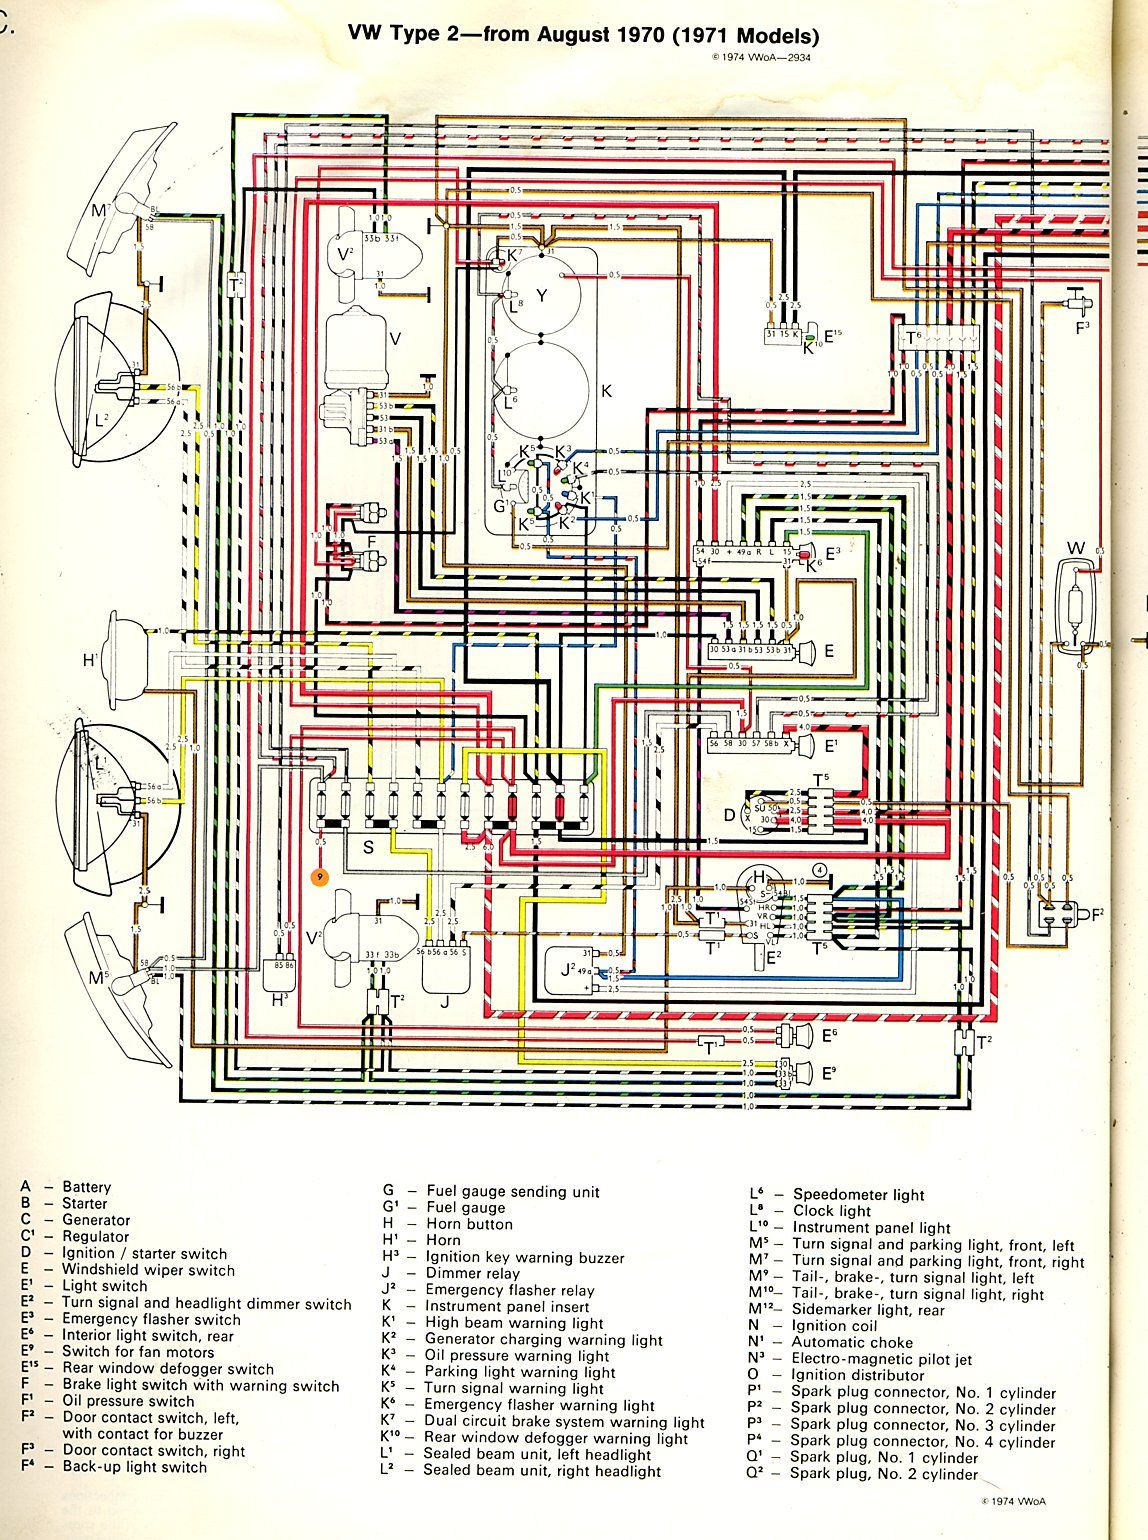 wiring diagram together with 1971 vw super beetle wiring diagram on1971 vw bug fuse diagram wiring diagram specialties1971 bus wiring diagram thegoldenbug com stuff to try